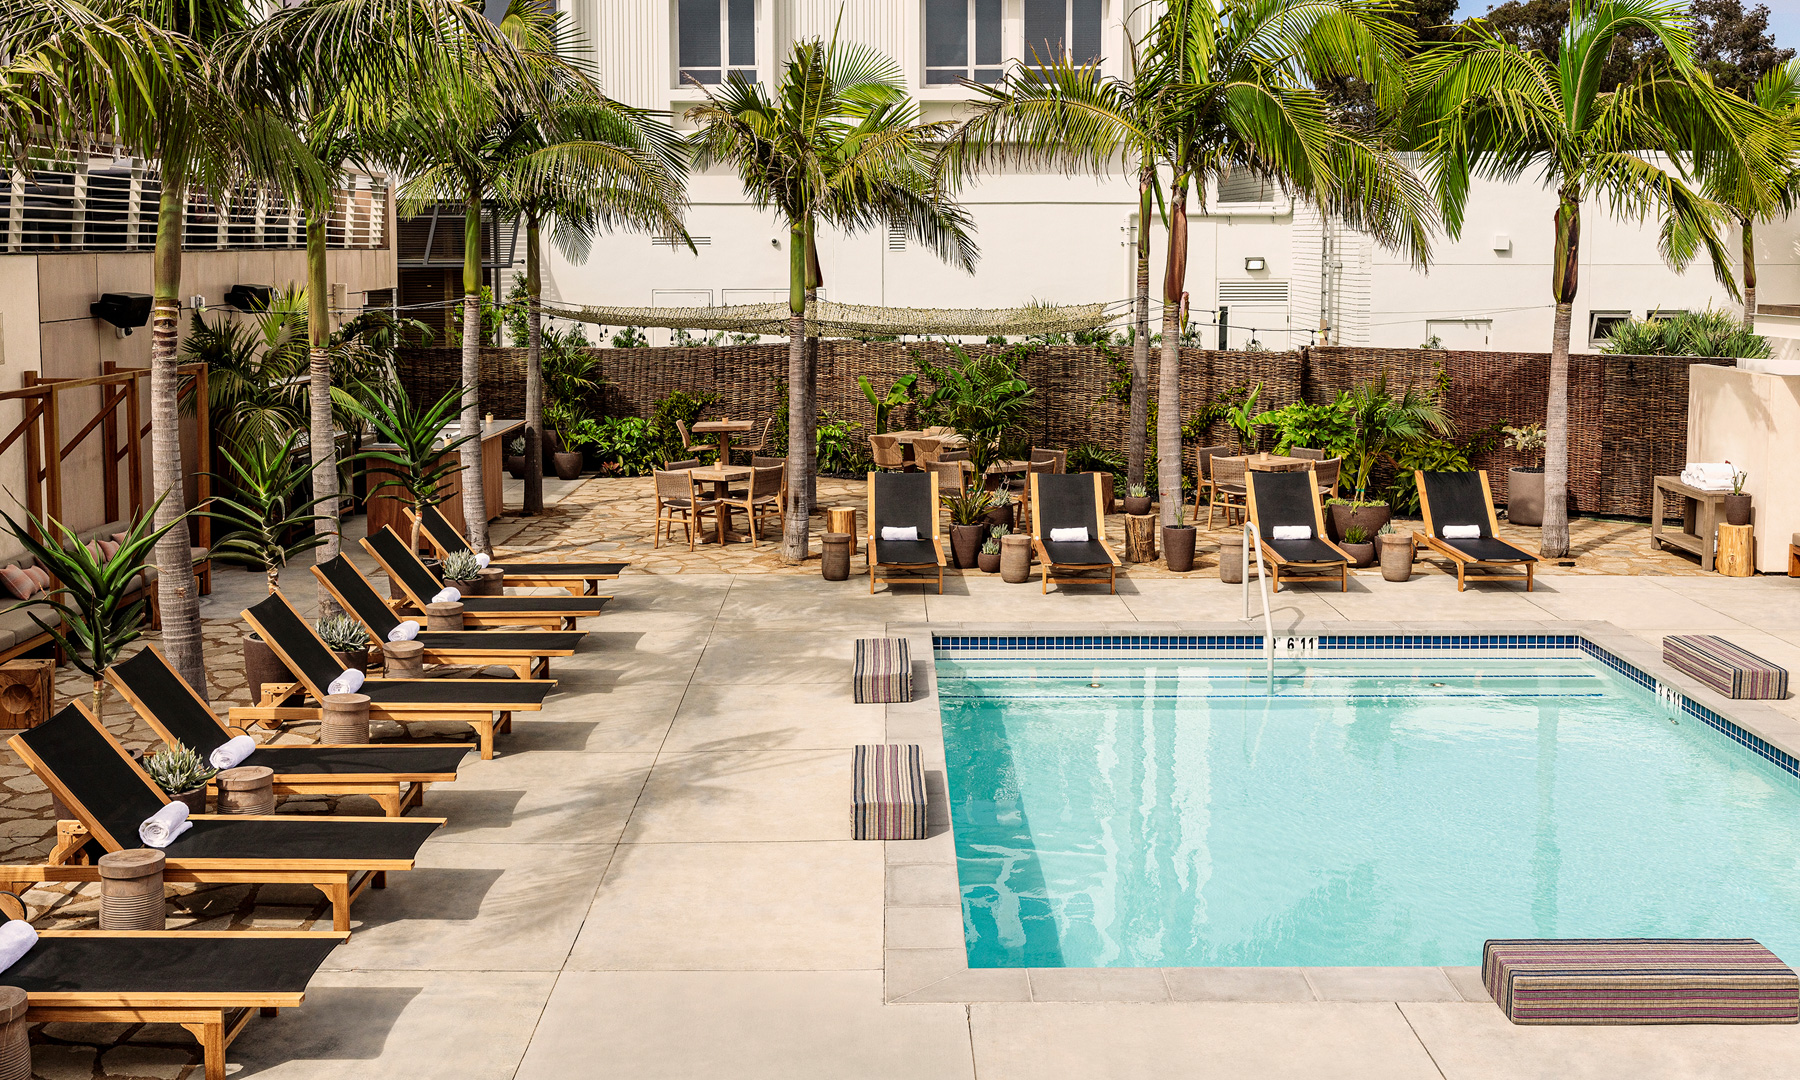 Pool surrounded by chaise lounge chairs and palm trees